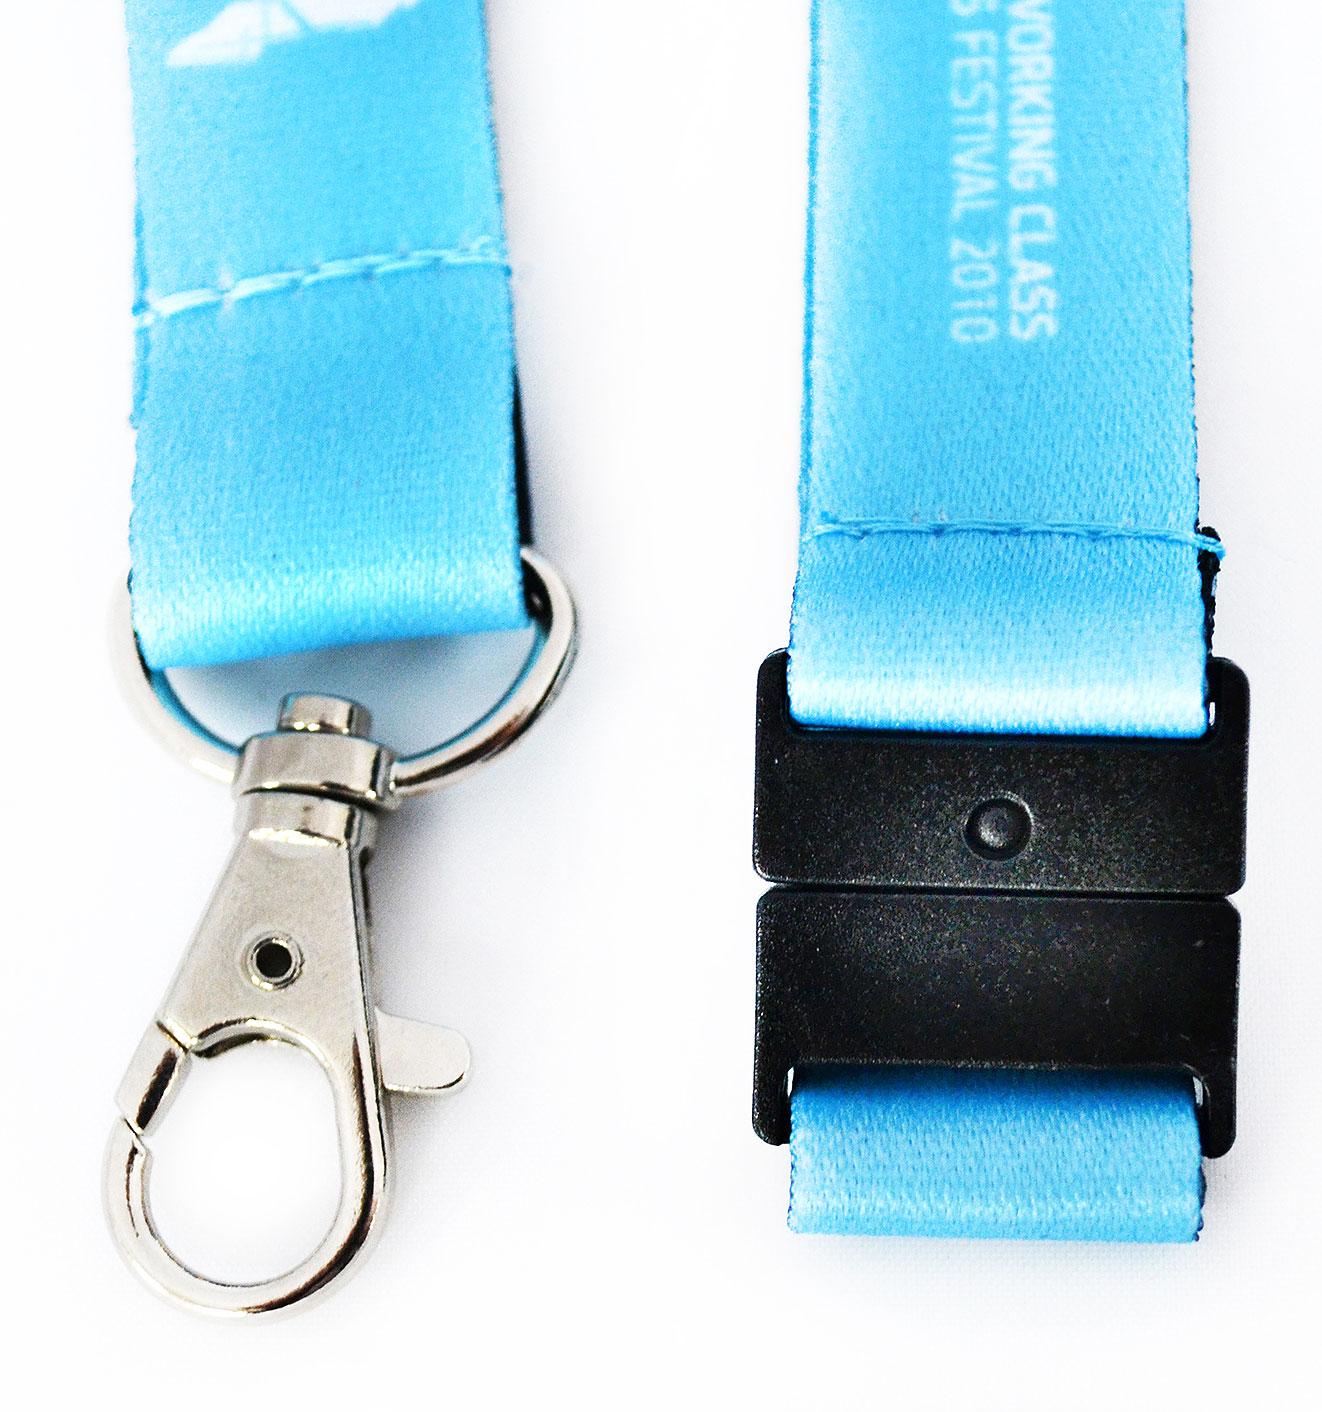 Branded UK Dye Sublimation Lanyard